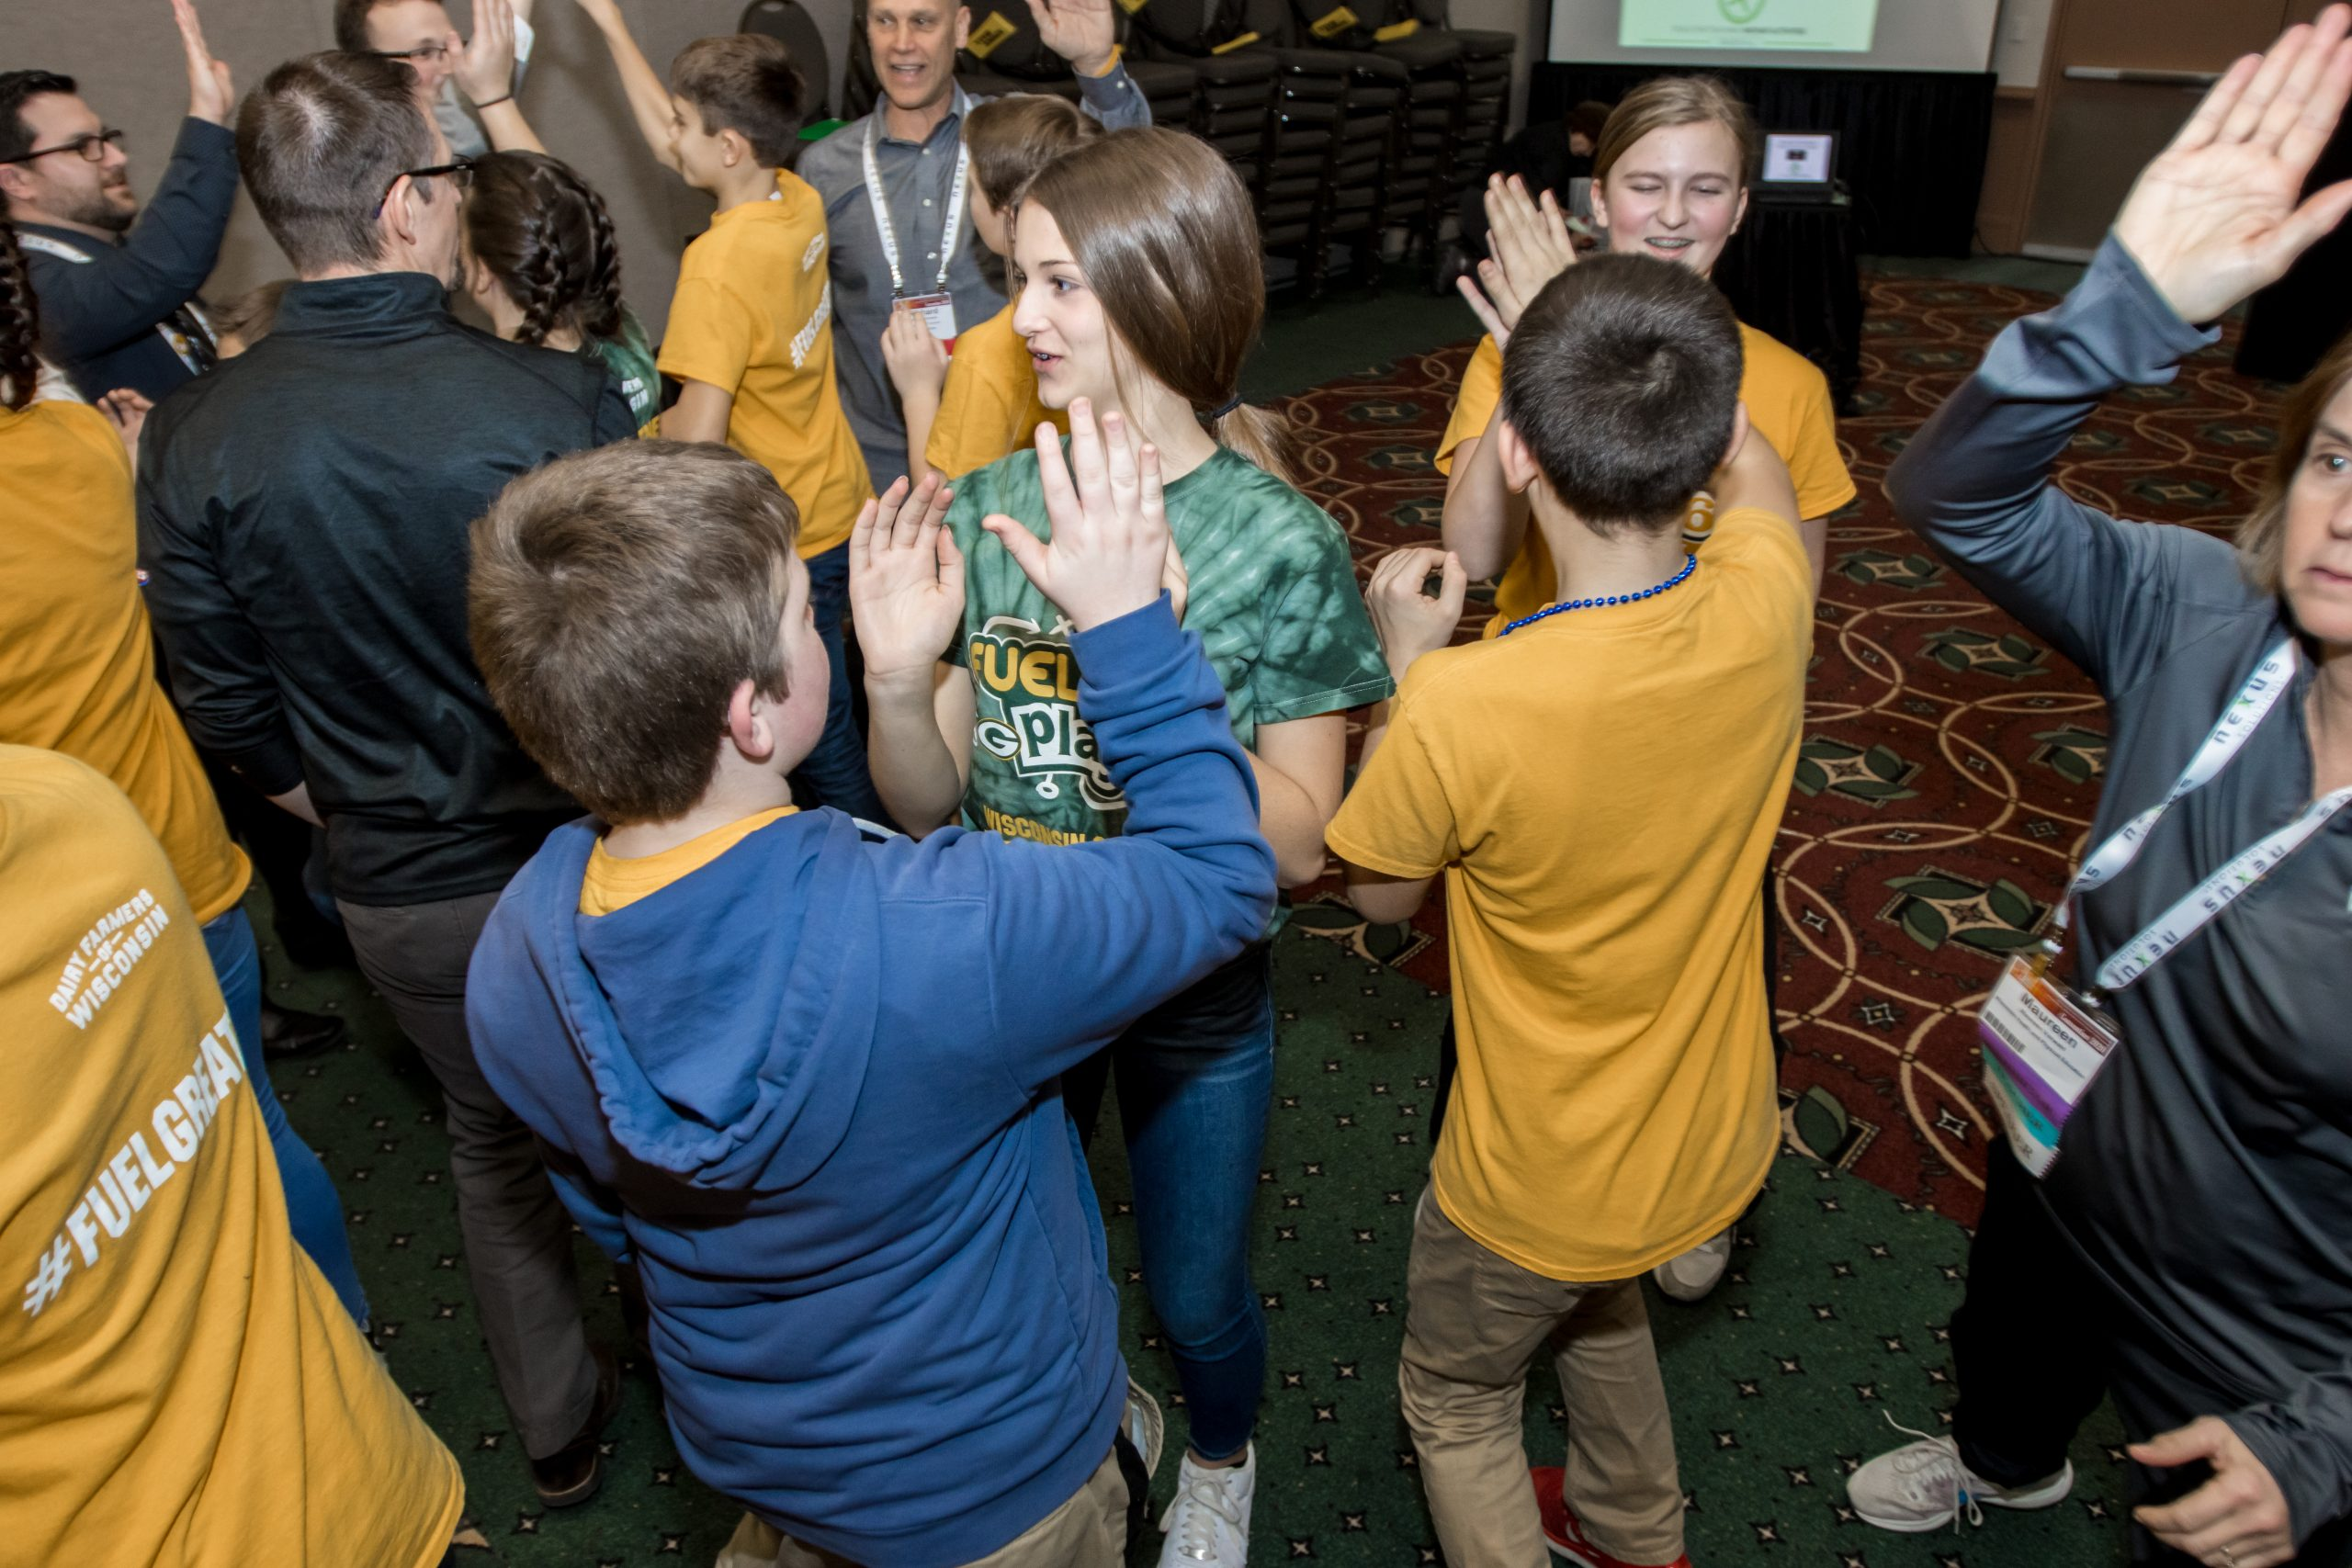 Students high five one another at the State Education Convention.